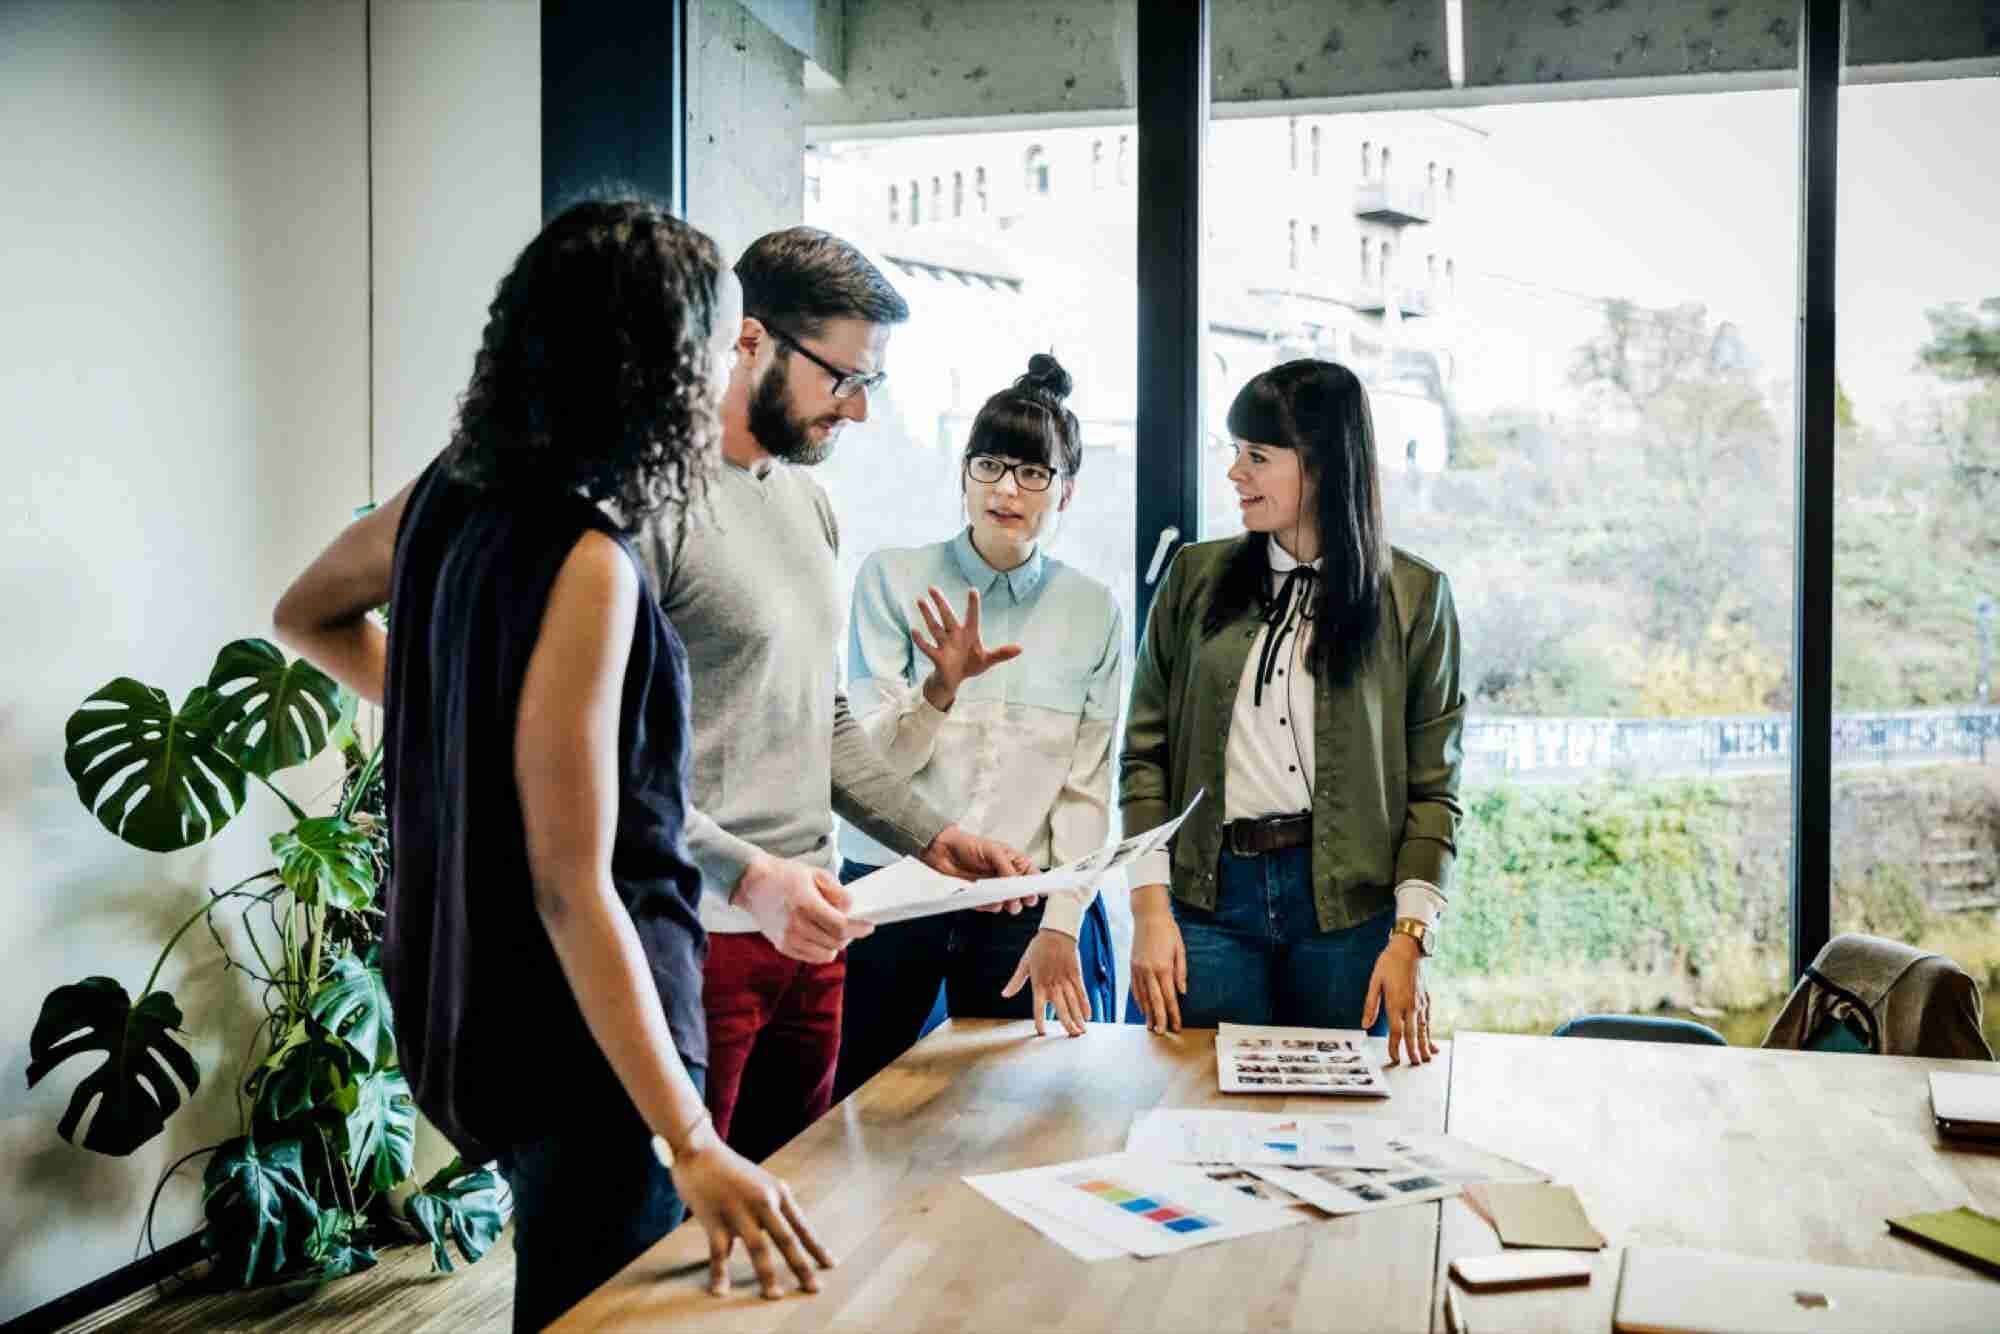 6 Insights to Increase Your Business Acumen